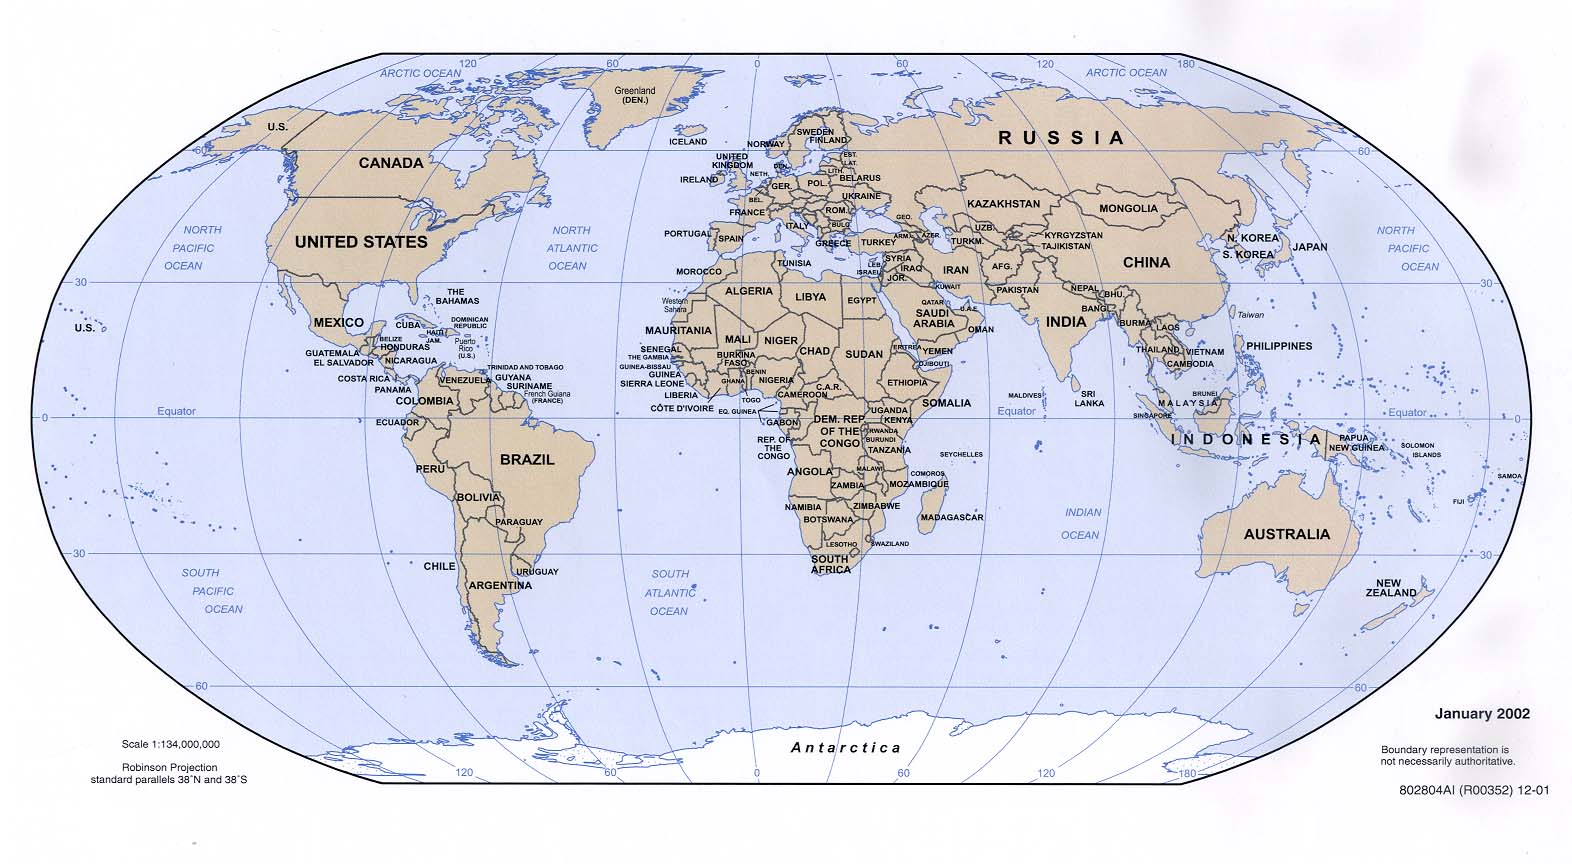 World Maps And World Atlas Worldofmaps Net Online Maps And